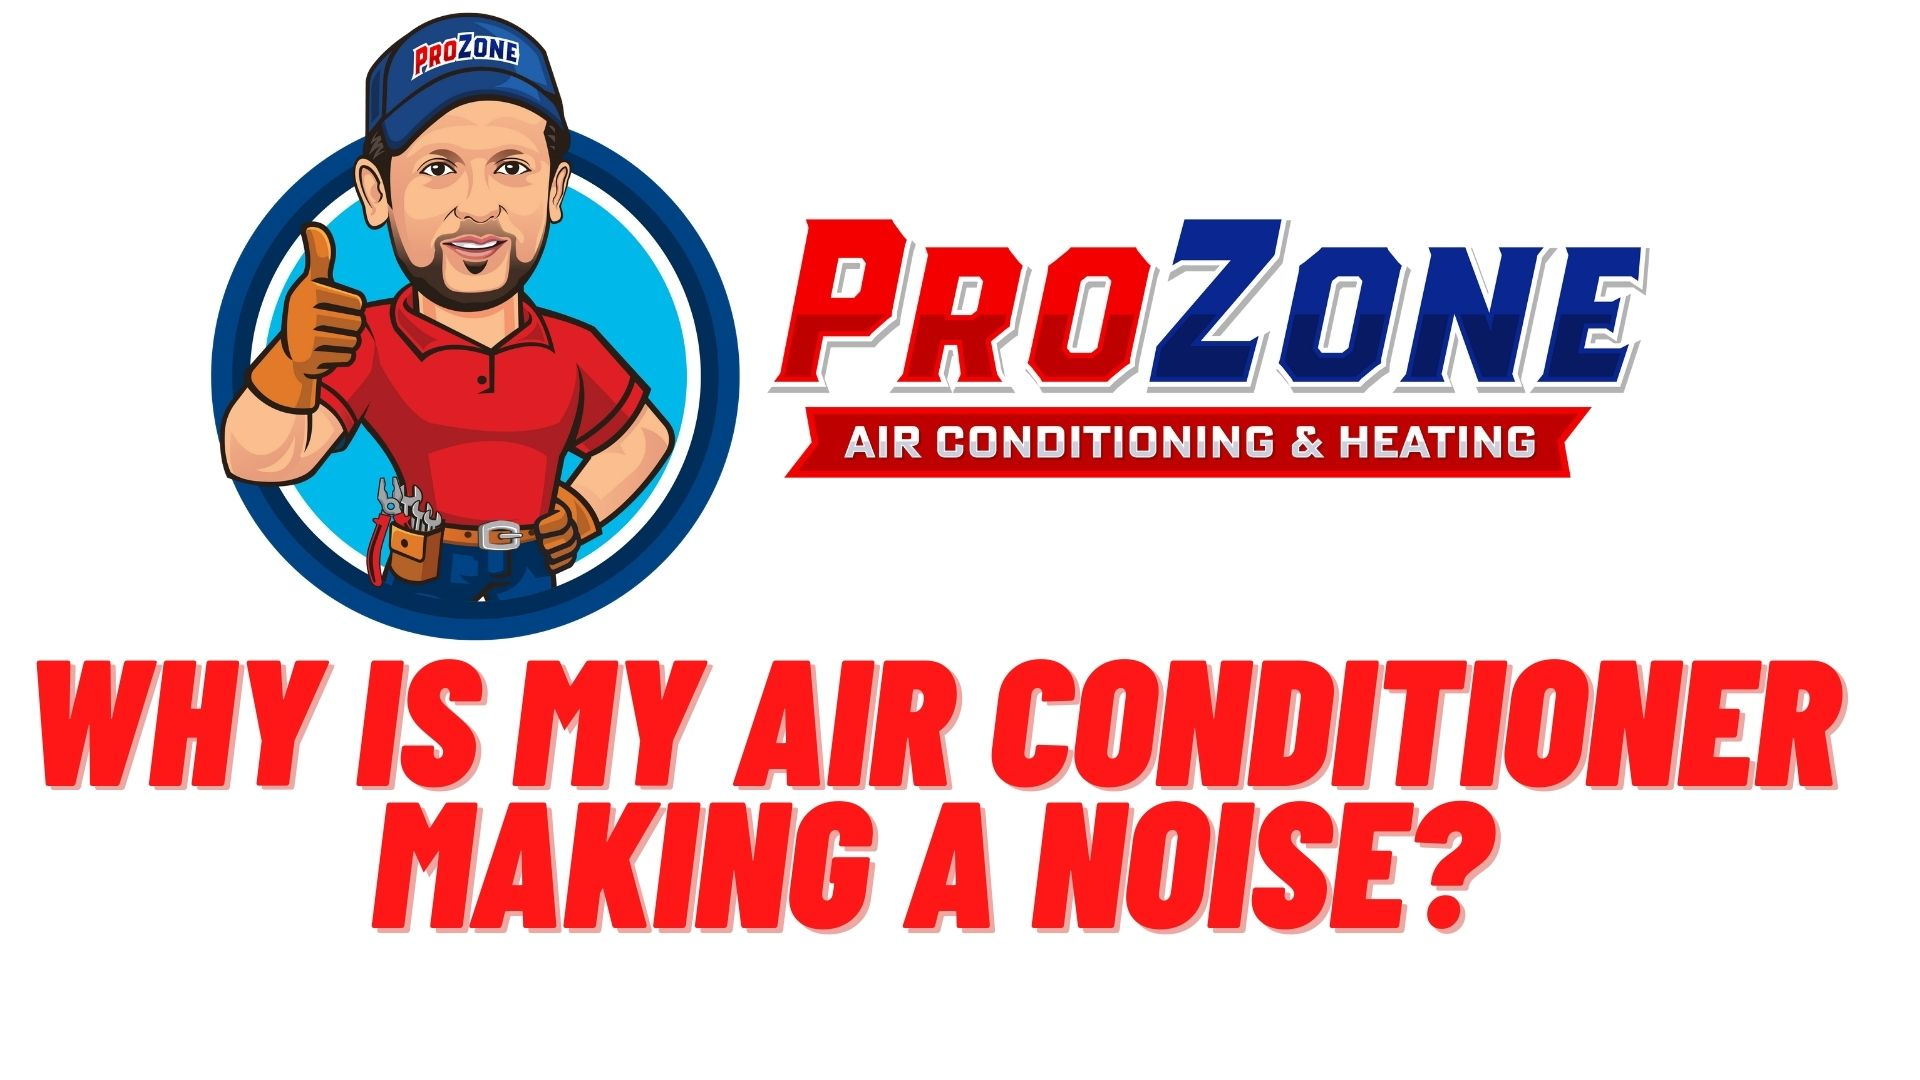 Why Is My Air Conditioner Making A Noise?